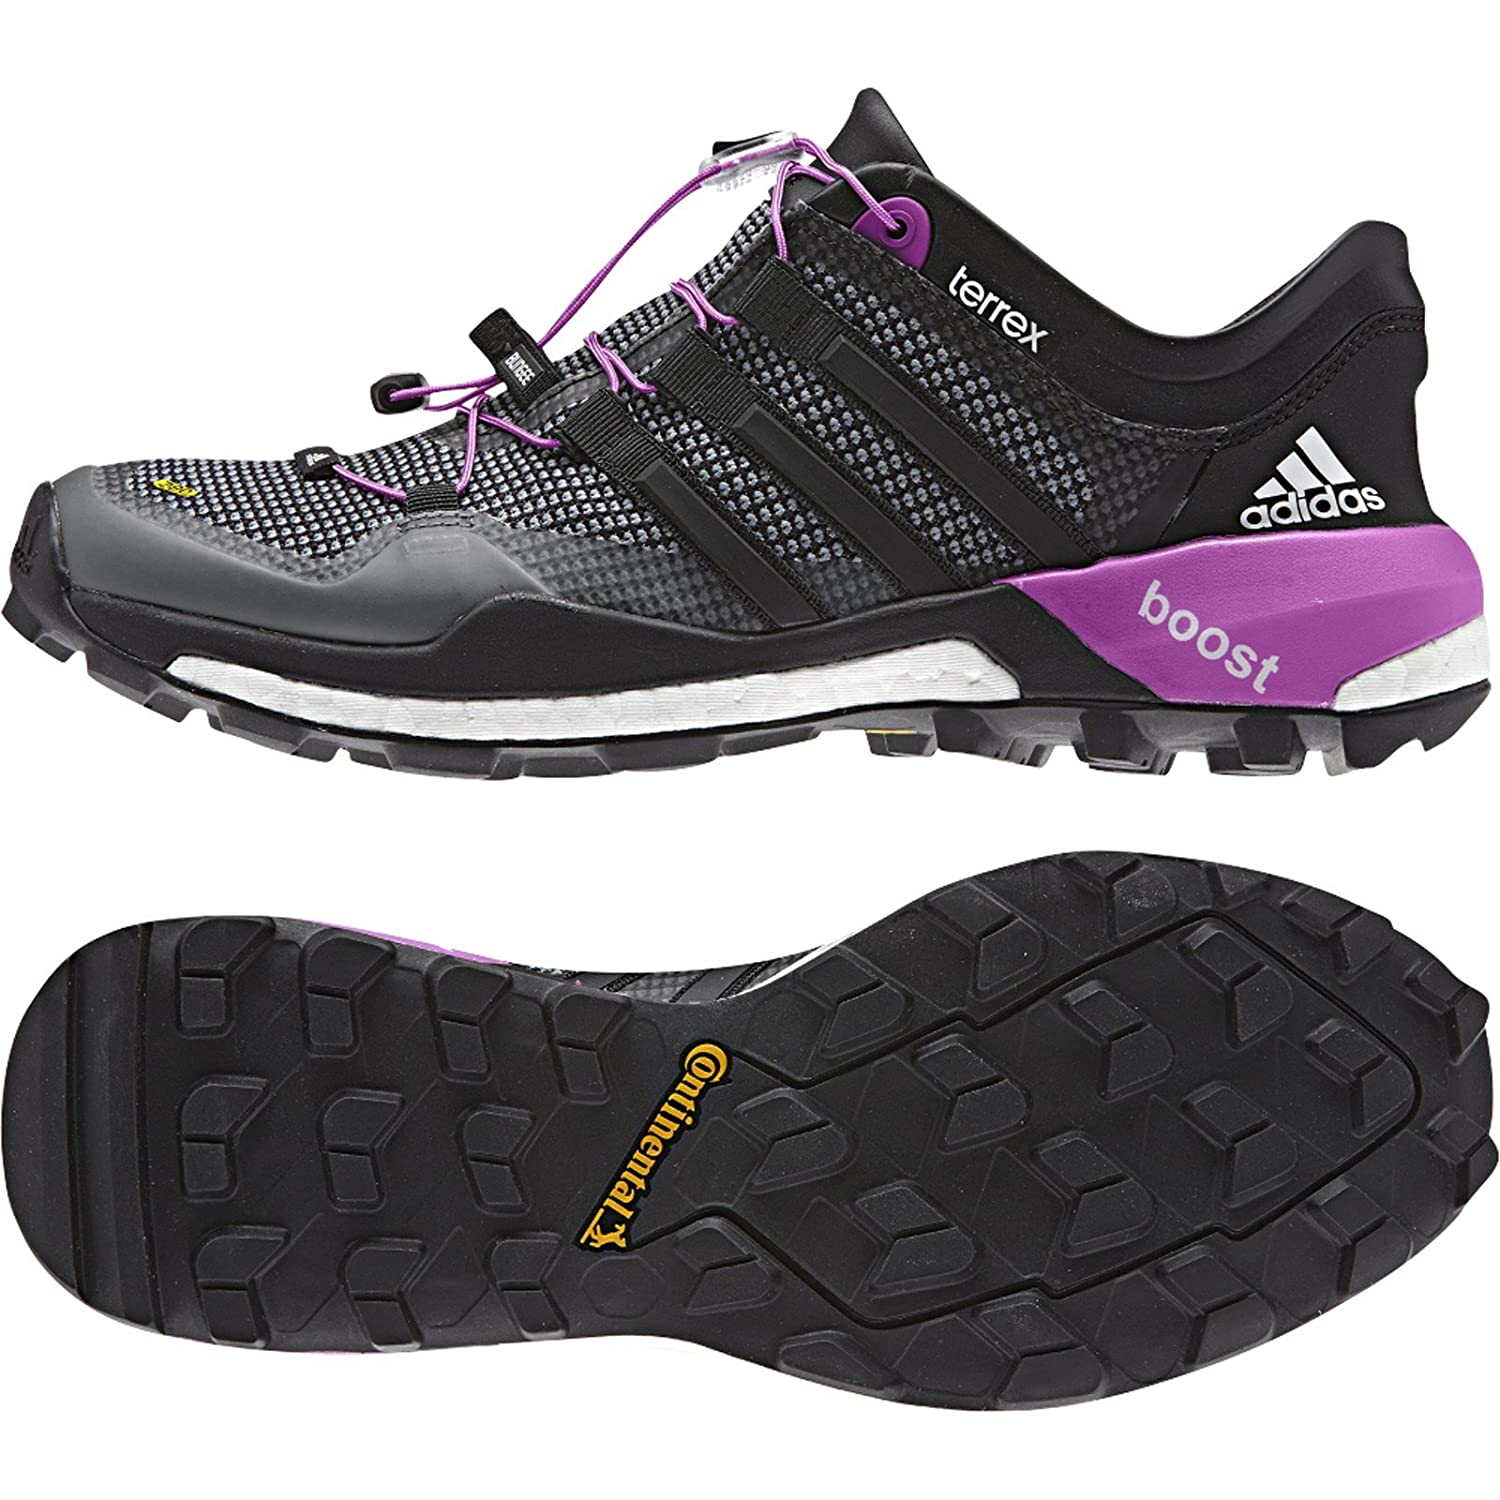 Adidas Terrex Boost Shoe - Women's